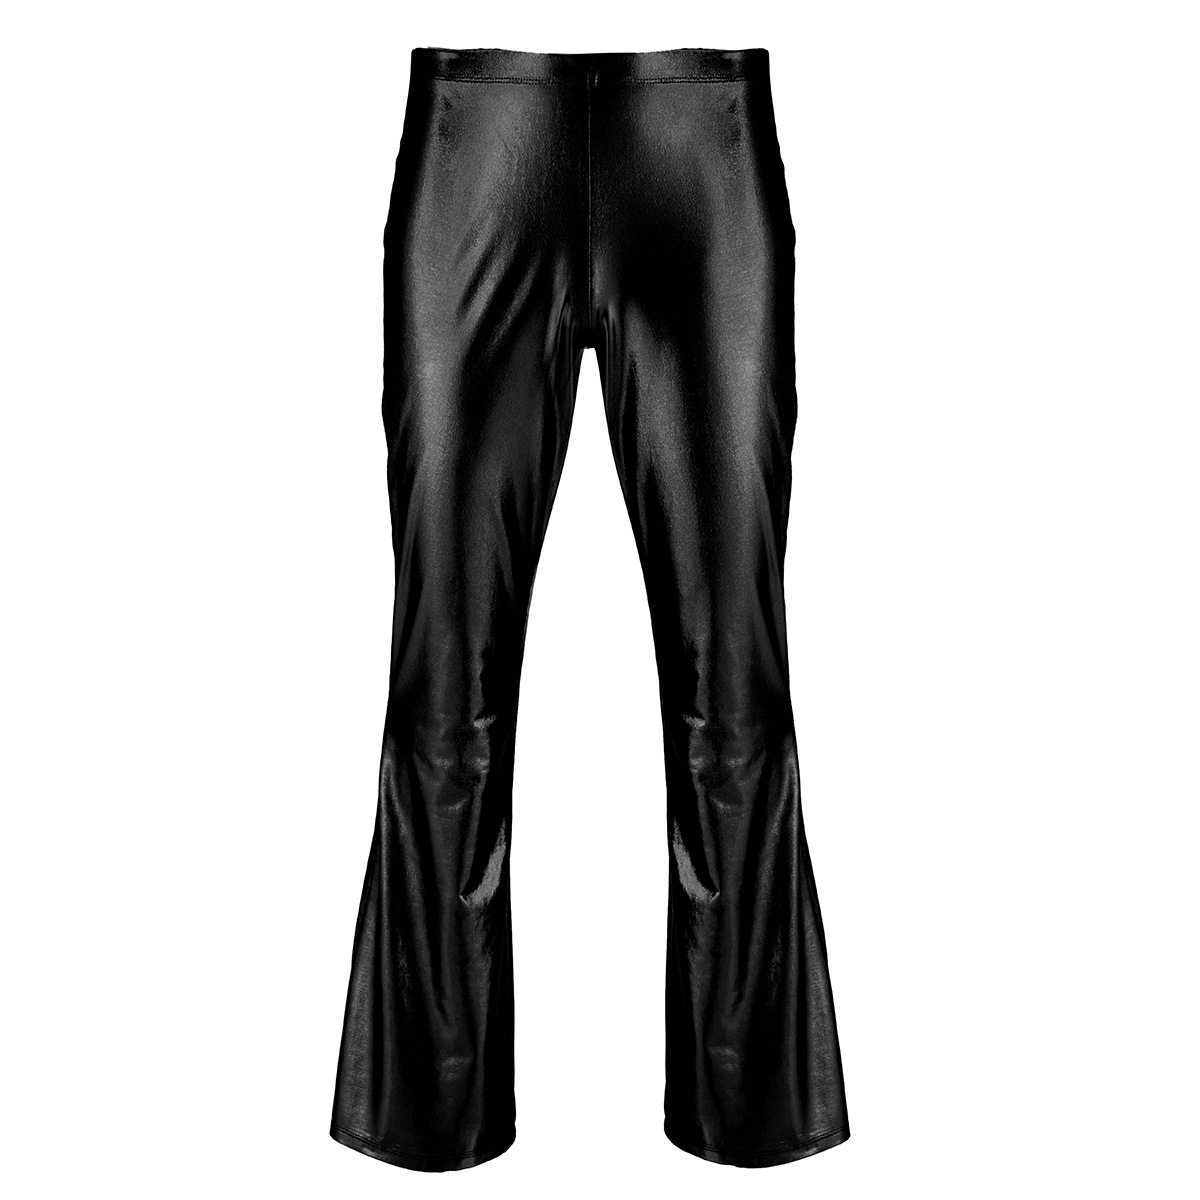 ChicTry Adults Mens Shiny Metallic Disco Pants with Bell Bottom Flared Long Pants Dude Costume Trousers for 70's Theme Parties 16